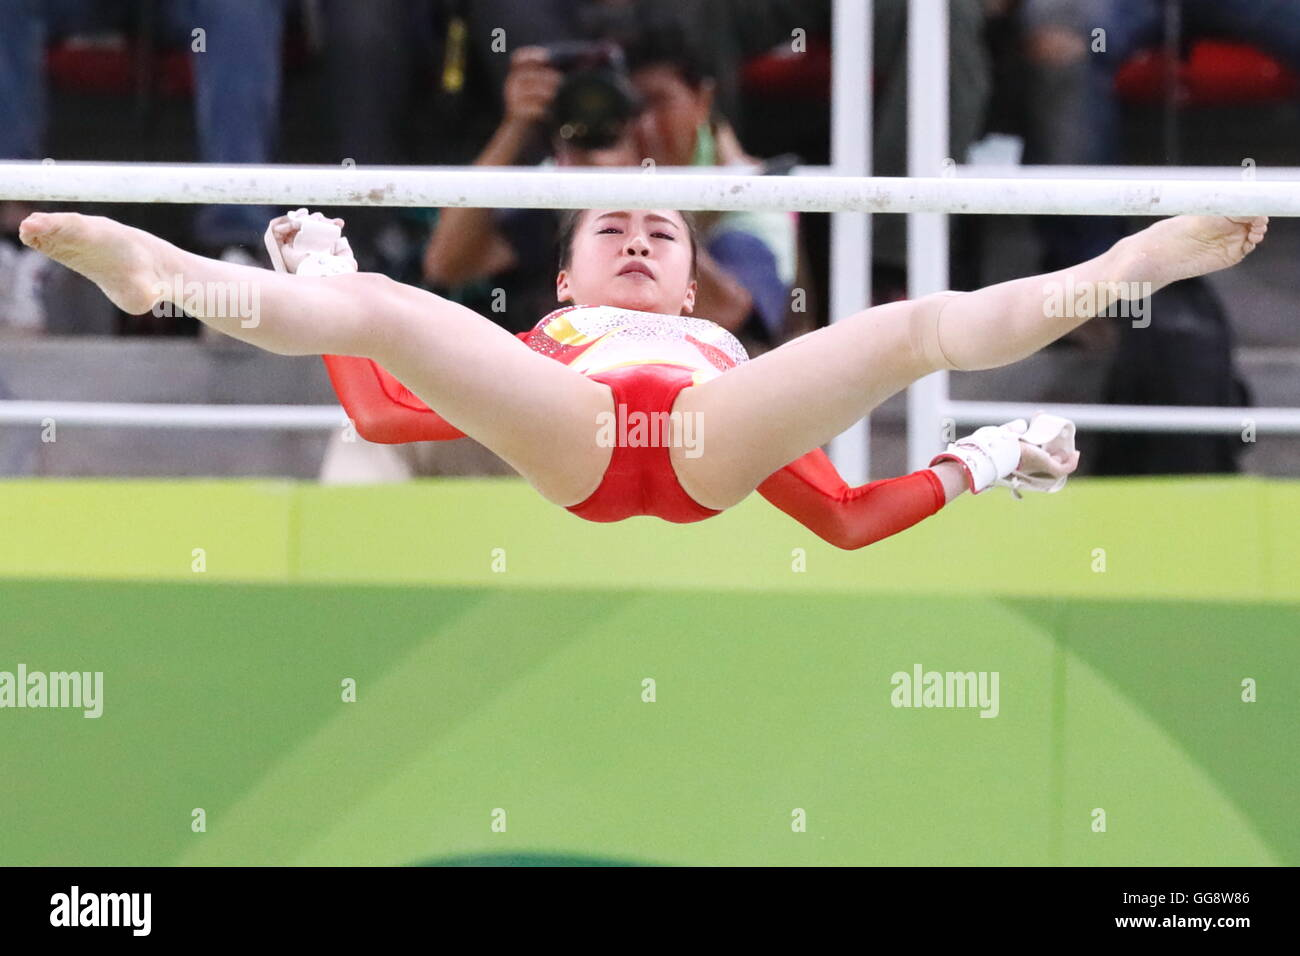 Rio de Janeiro, Brazil. 9th Aug, 2016. Aiko Sugihara (JPN) Artistic Gymnastics : Women's Final Uneven Bars at - Stock Image